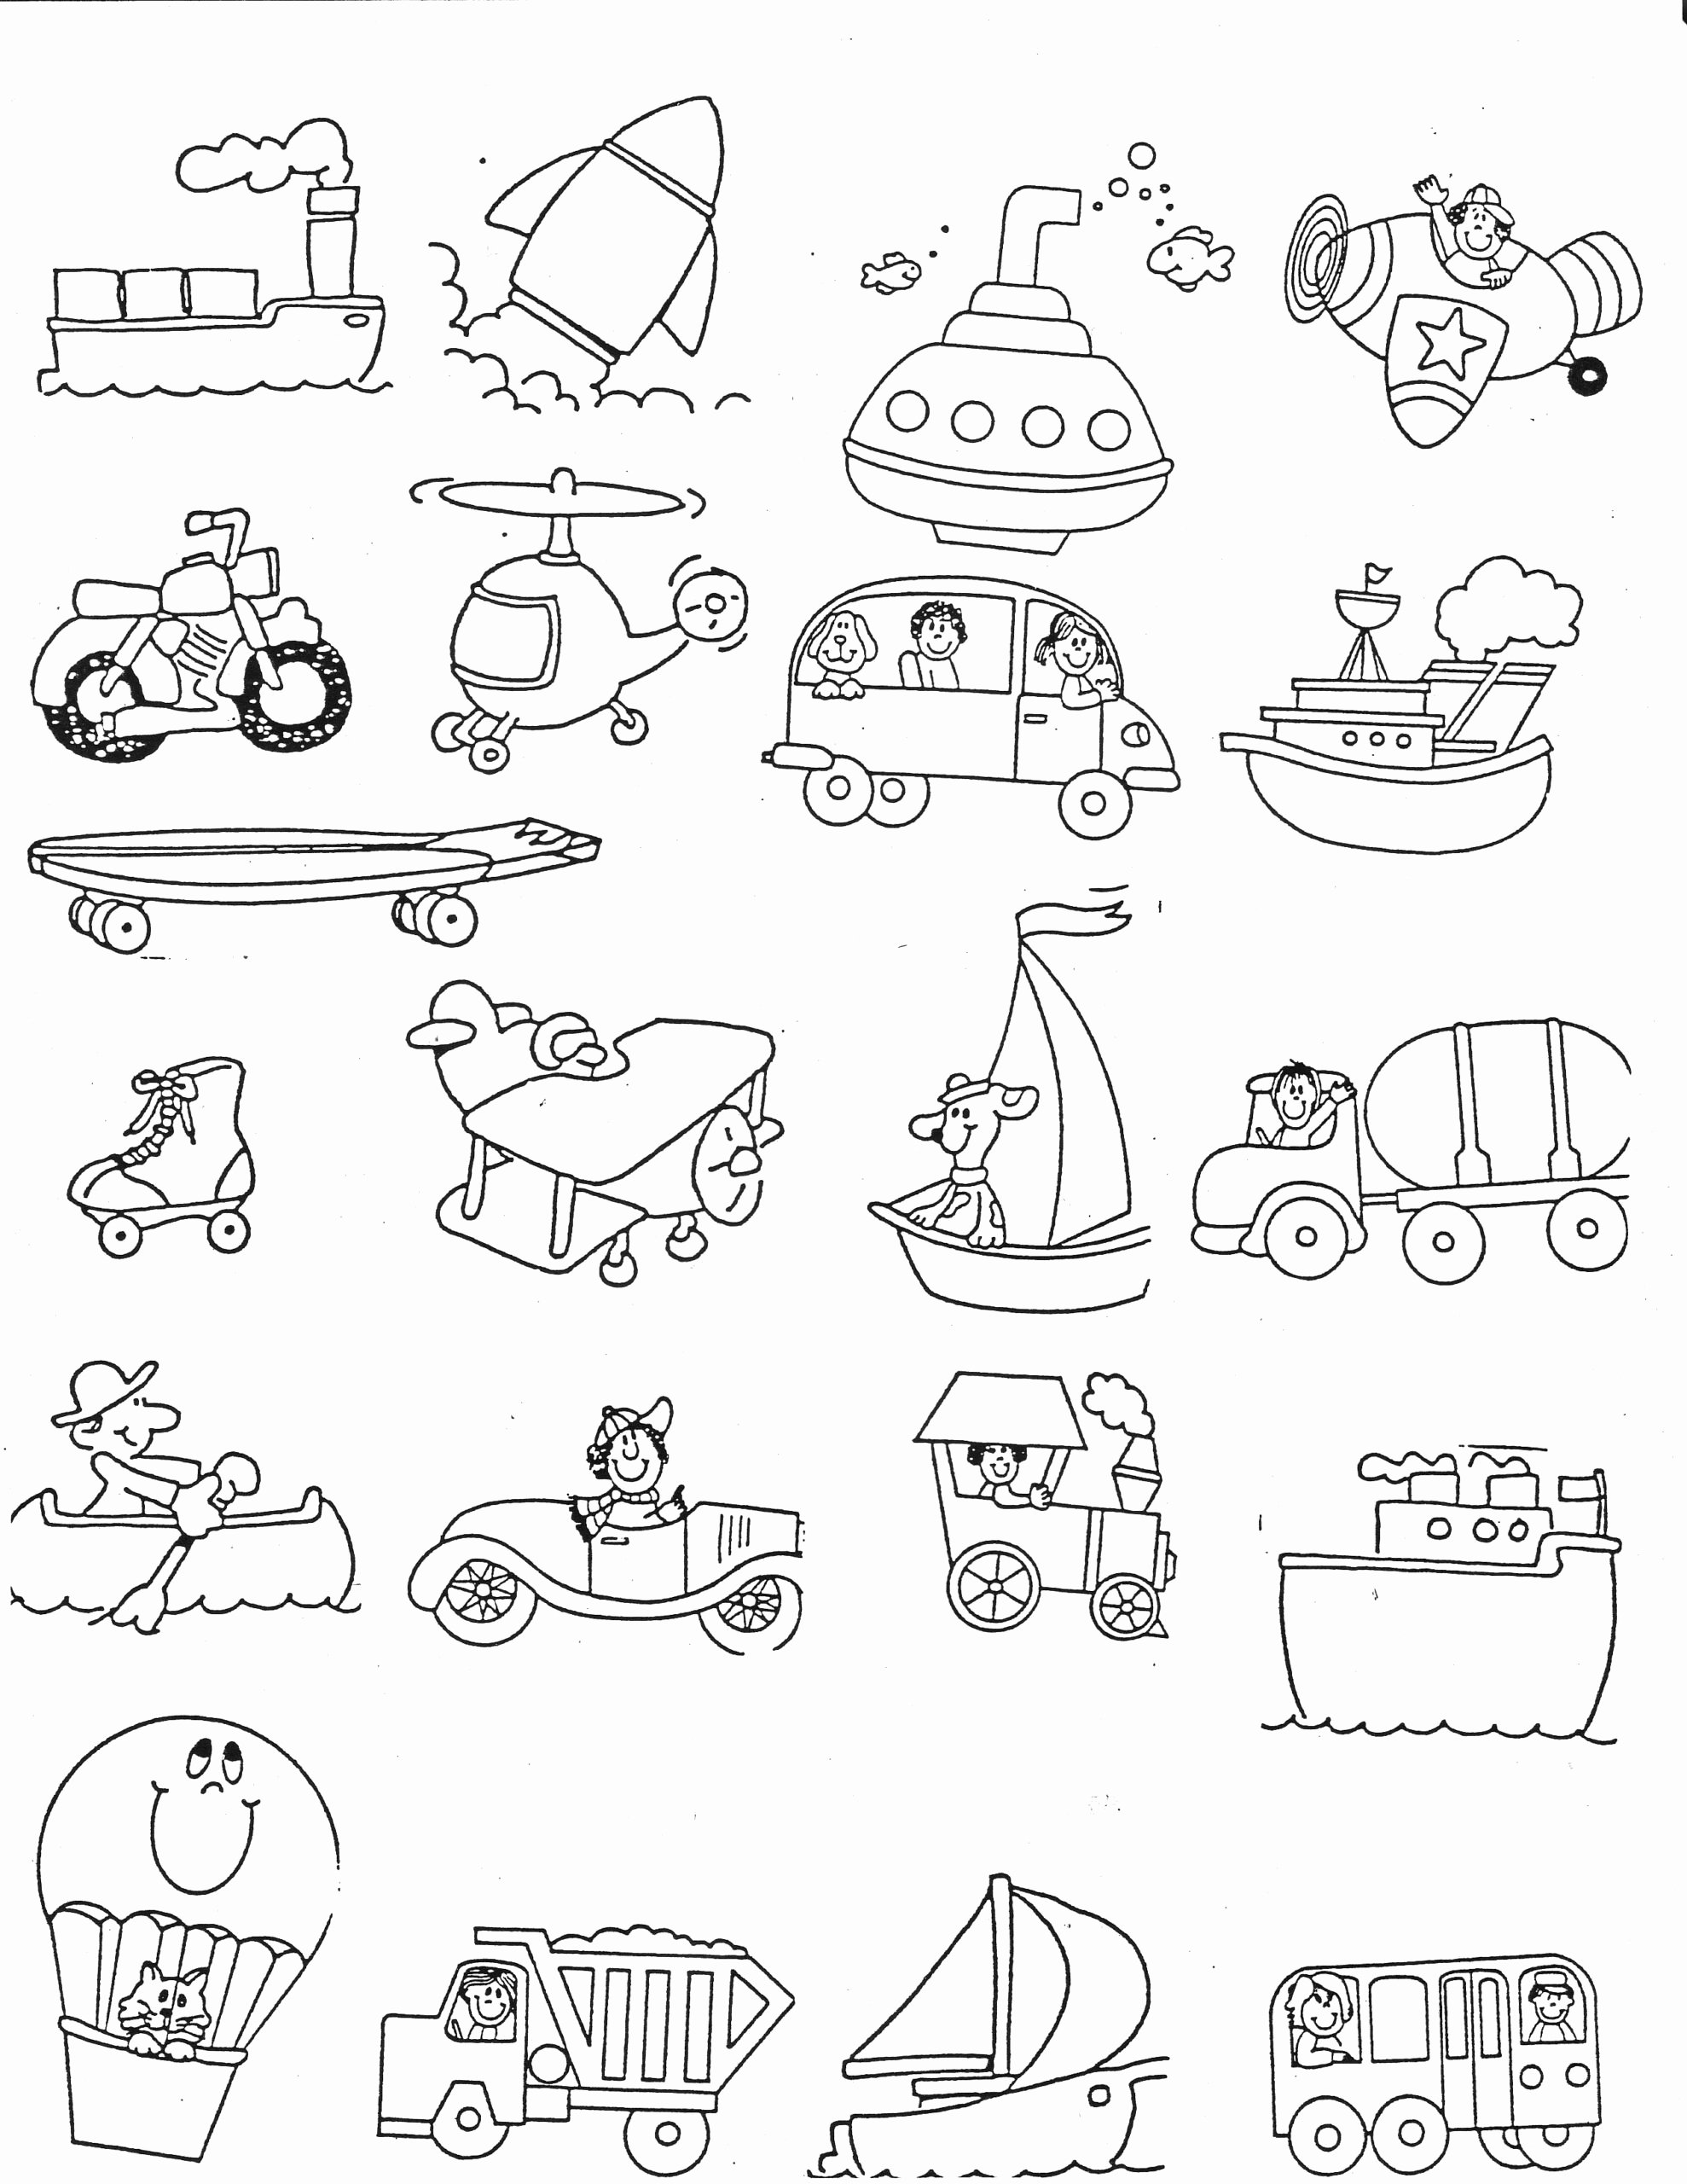 Transportation Worksheets for Preschoolers Lovely Worksheets Transportation Kindergarten Nana Half Worksheet